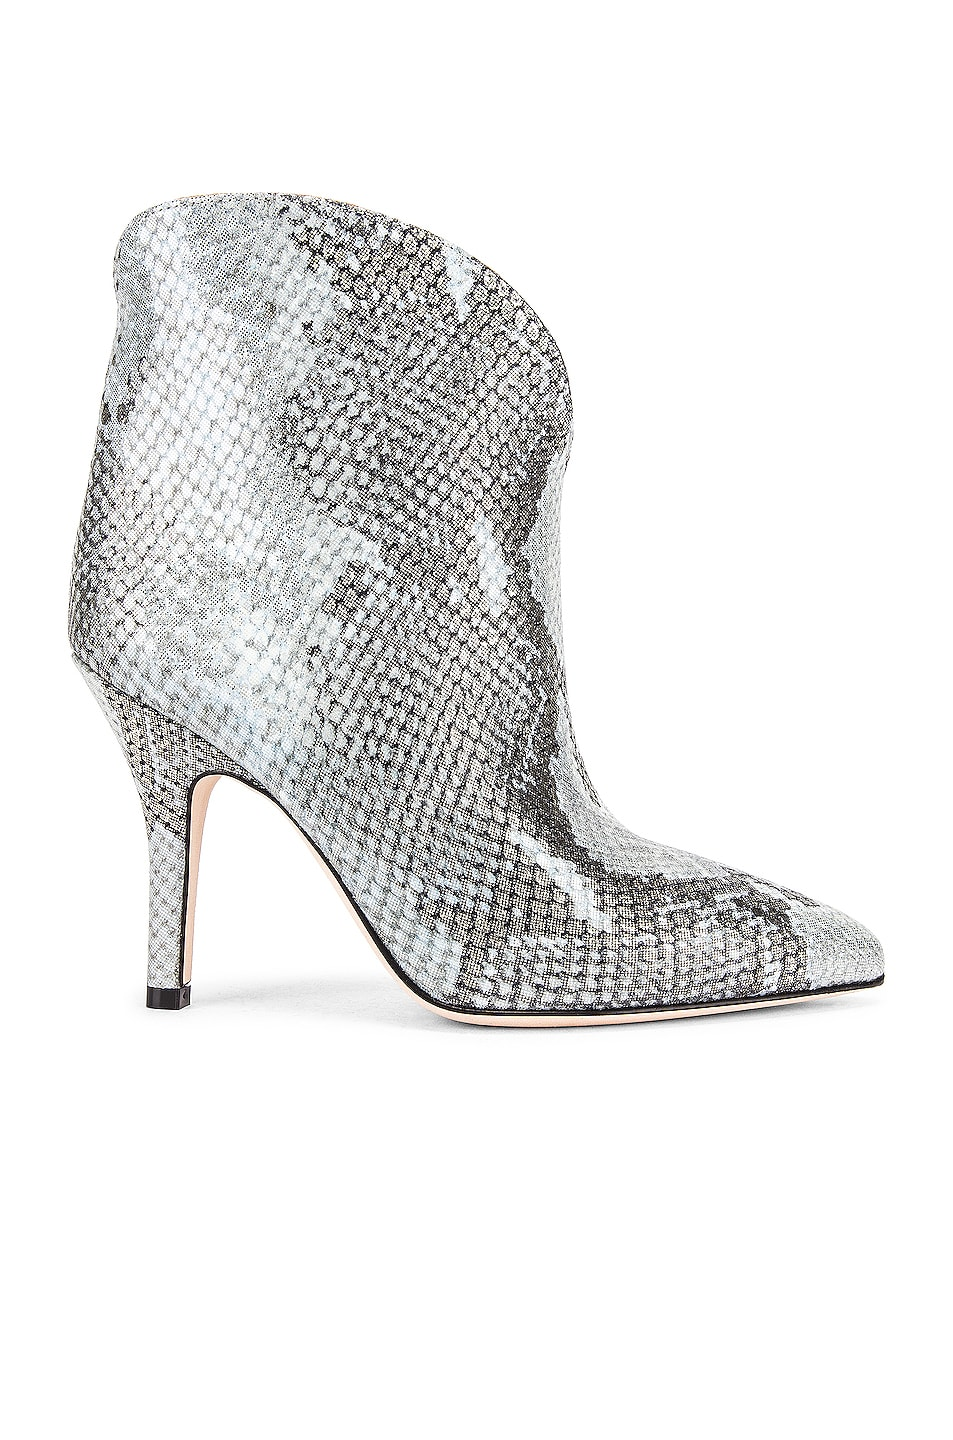 Image 1 of Paris Texas Python Lame Print Rounded Print Stiletto Ankle Boot in Light Blue